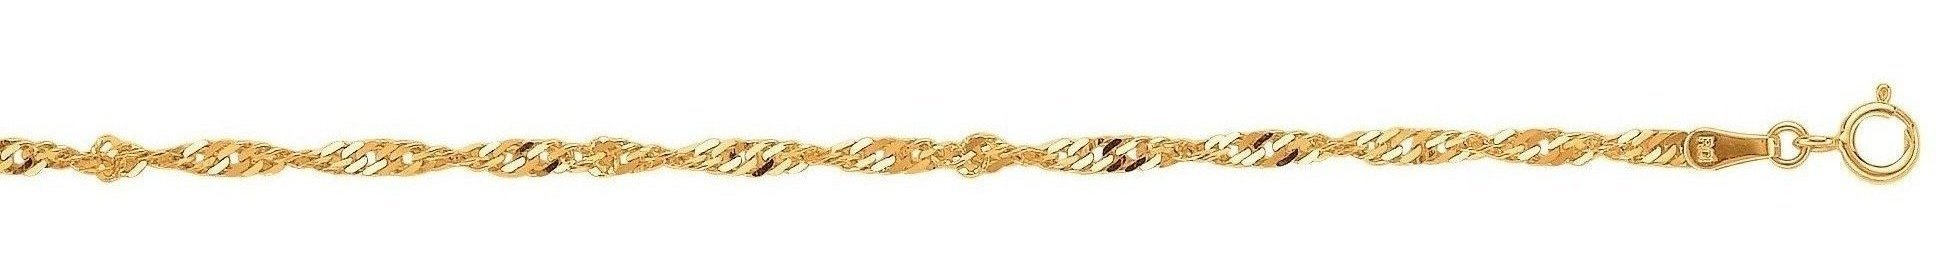 "22"" 10K Yellow Gold 2.2mm (0.09"") Polished Diamond Cut Sparkle Chain w/ Spring Ring Clasp"